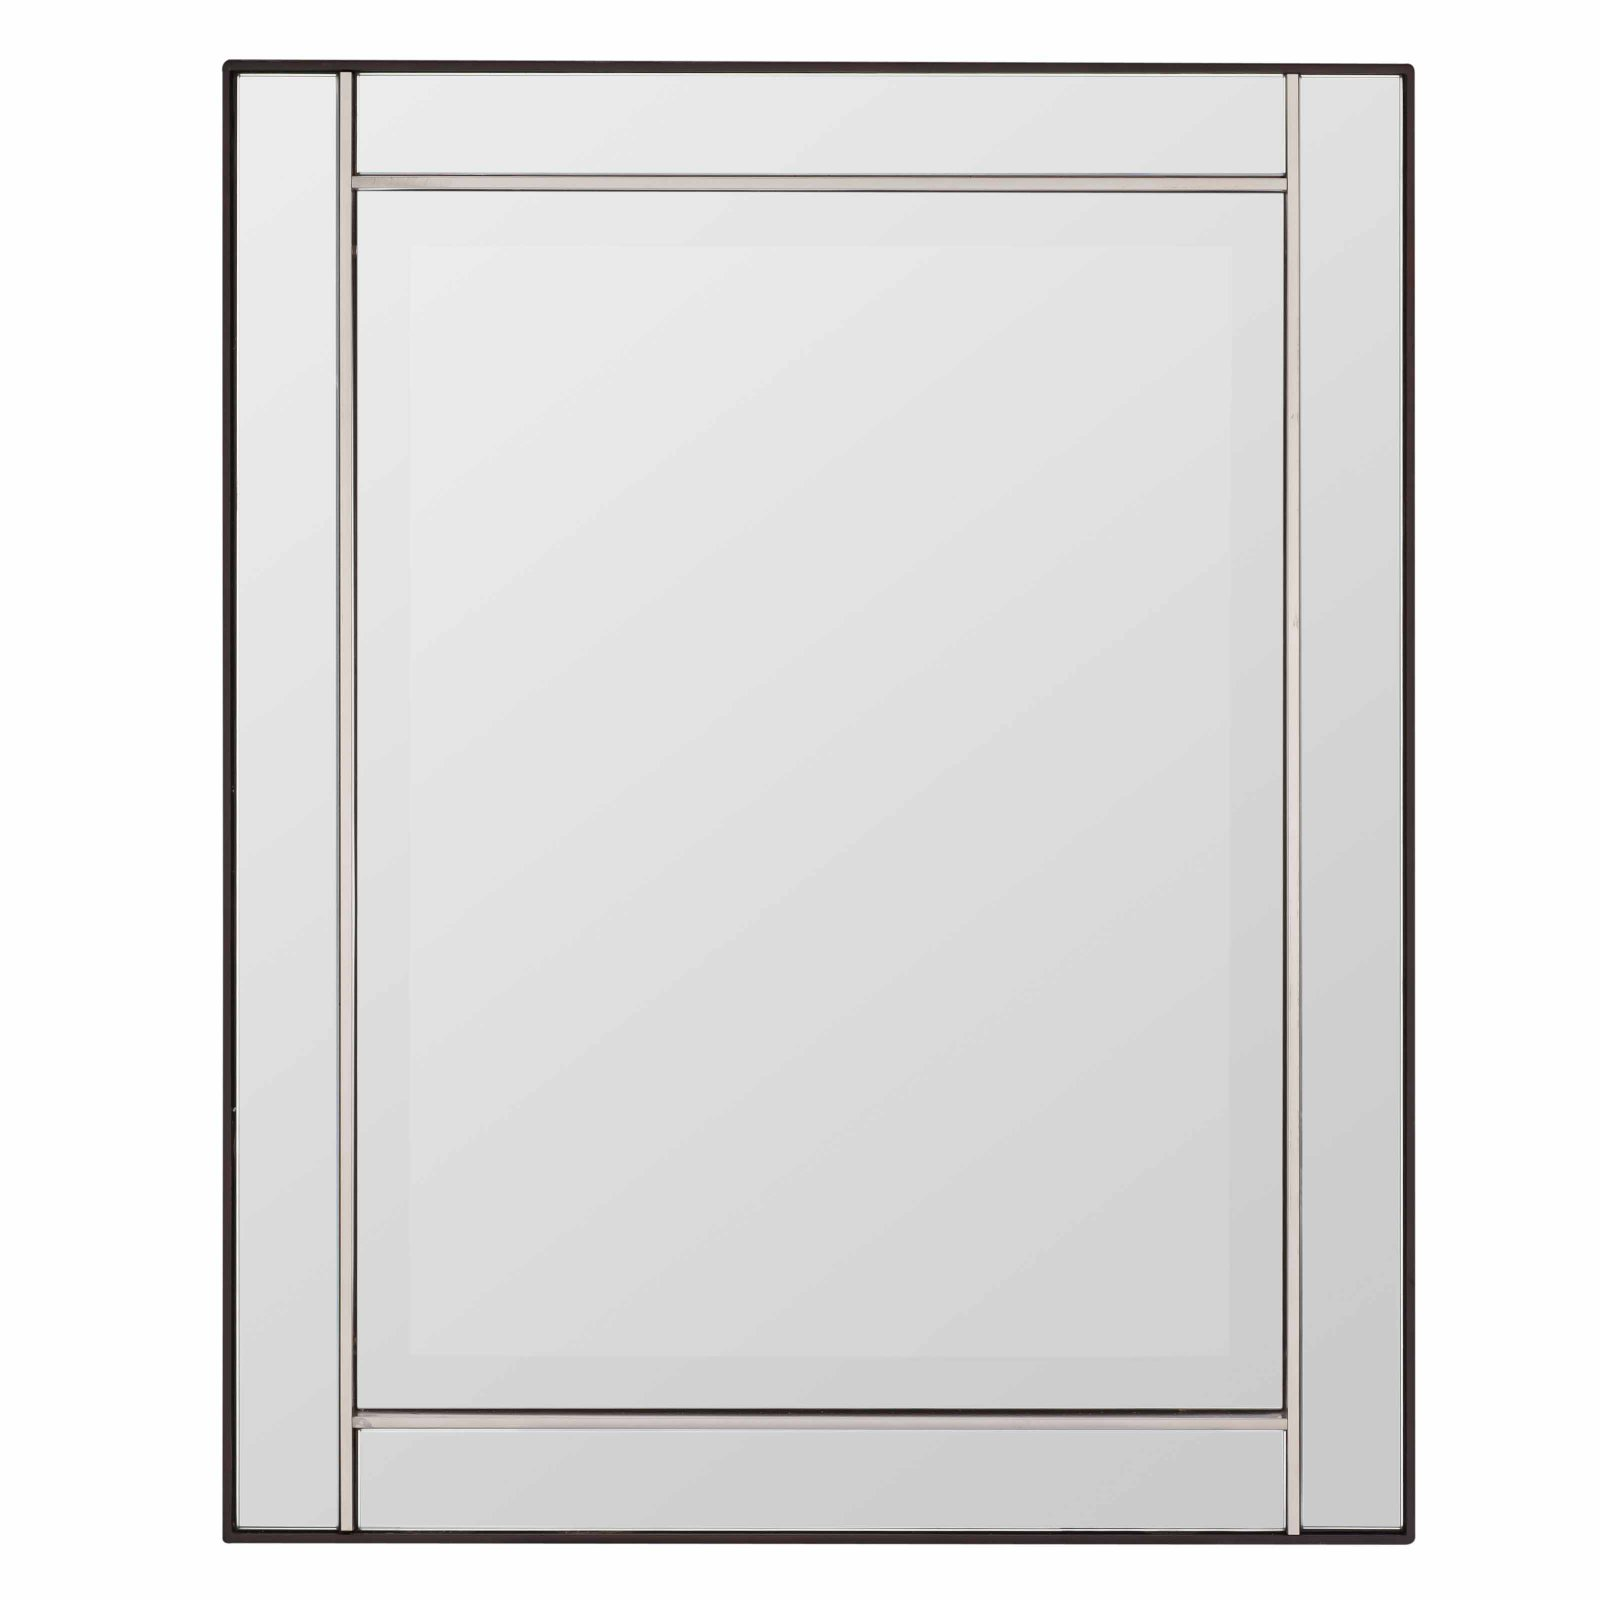 Jansen Wall Mirror - 24W x 30H in.